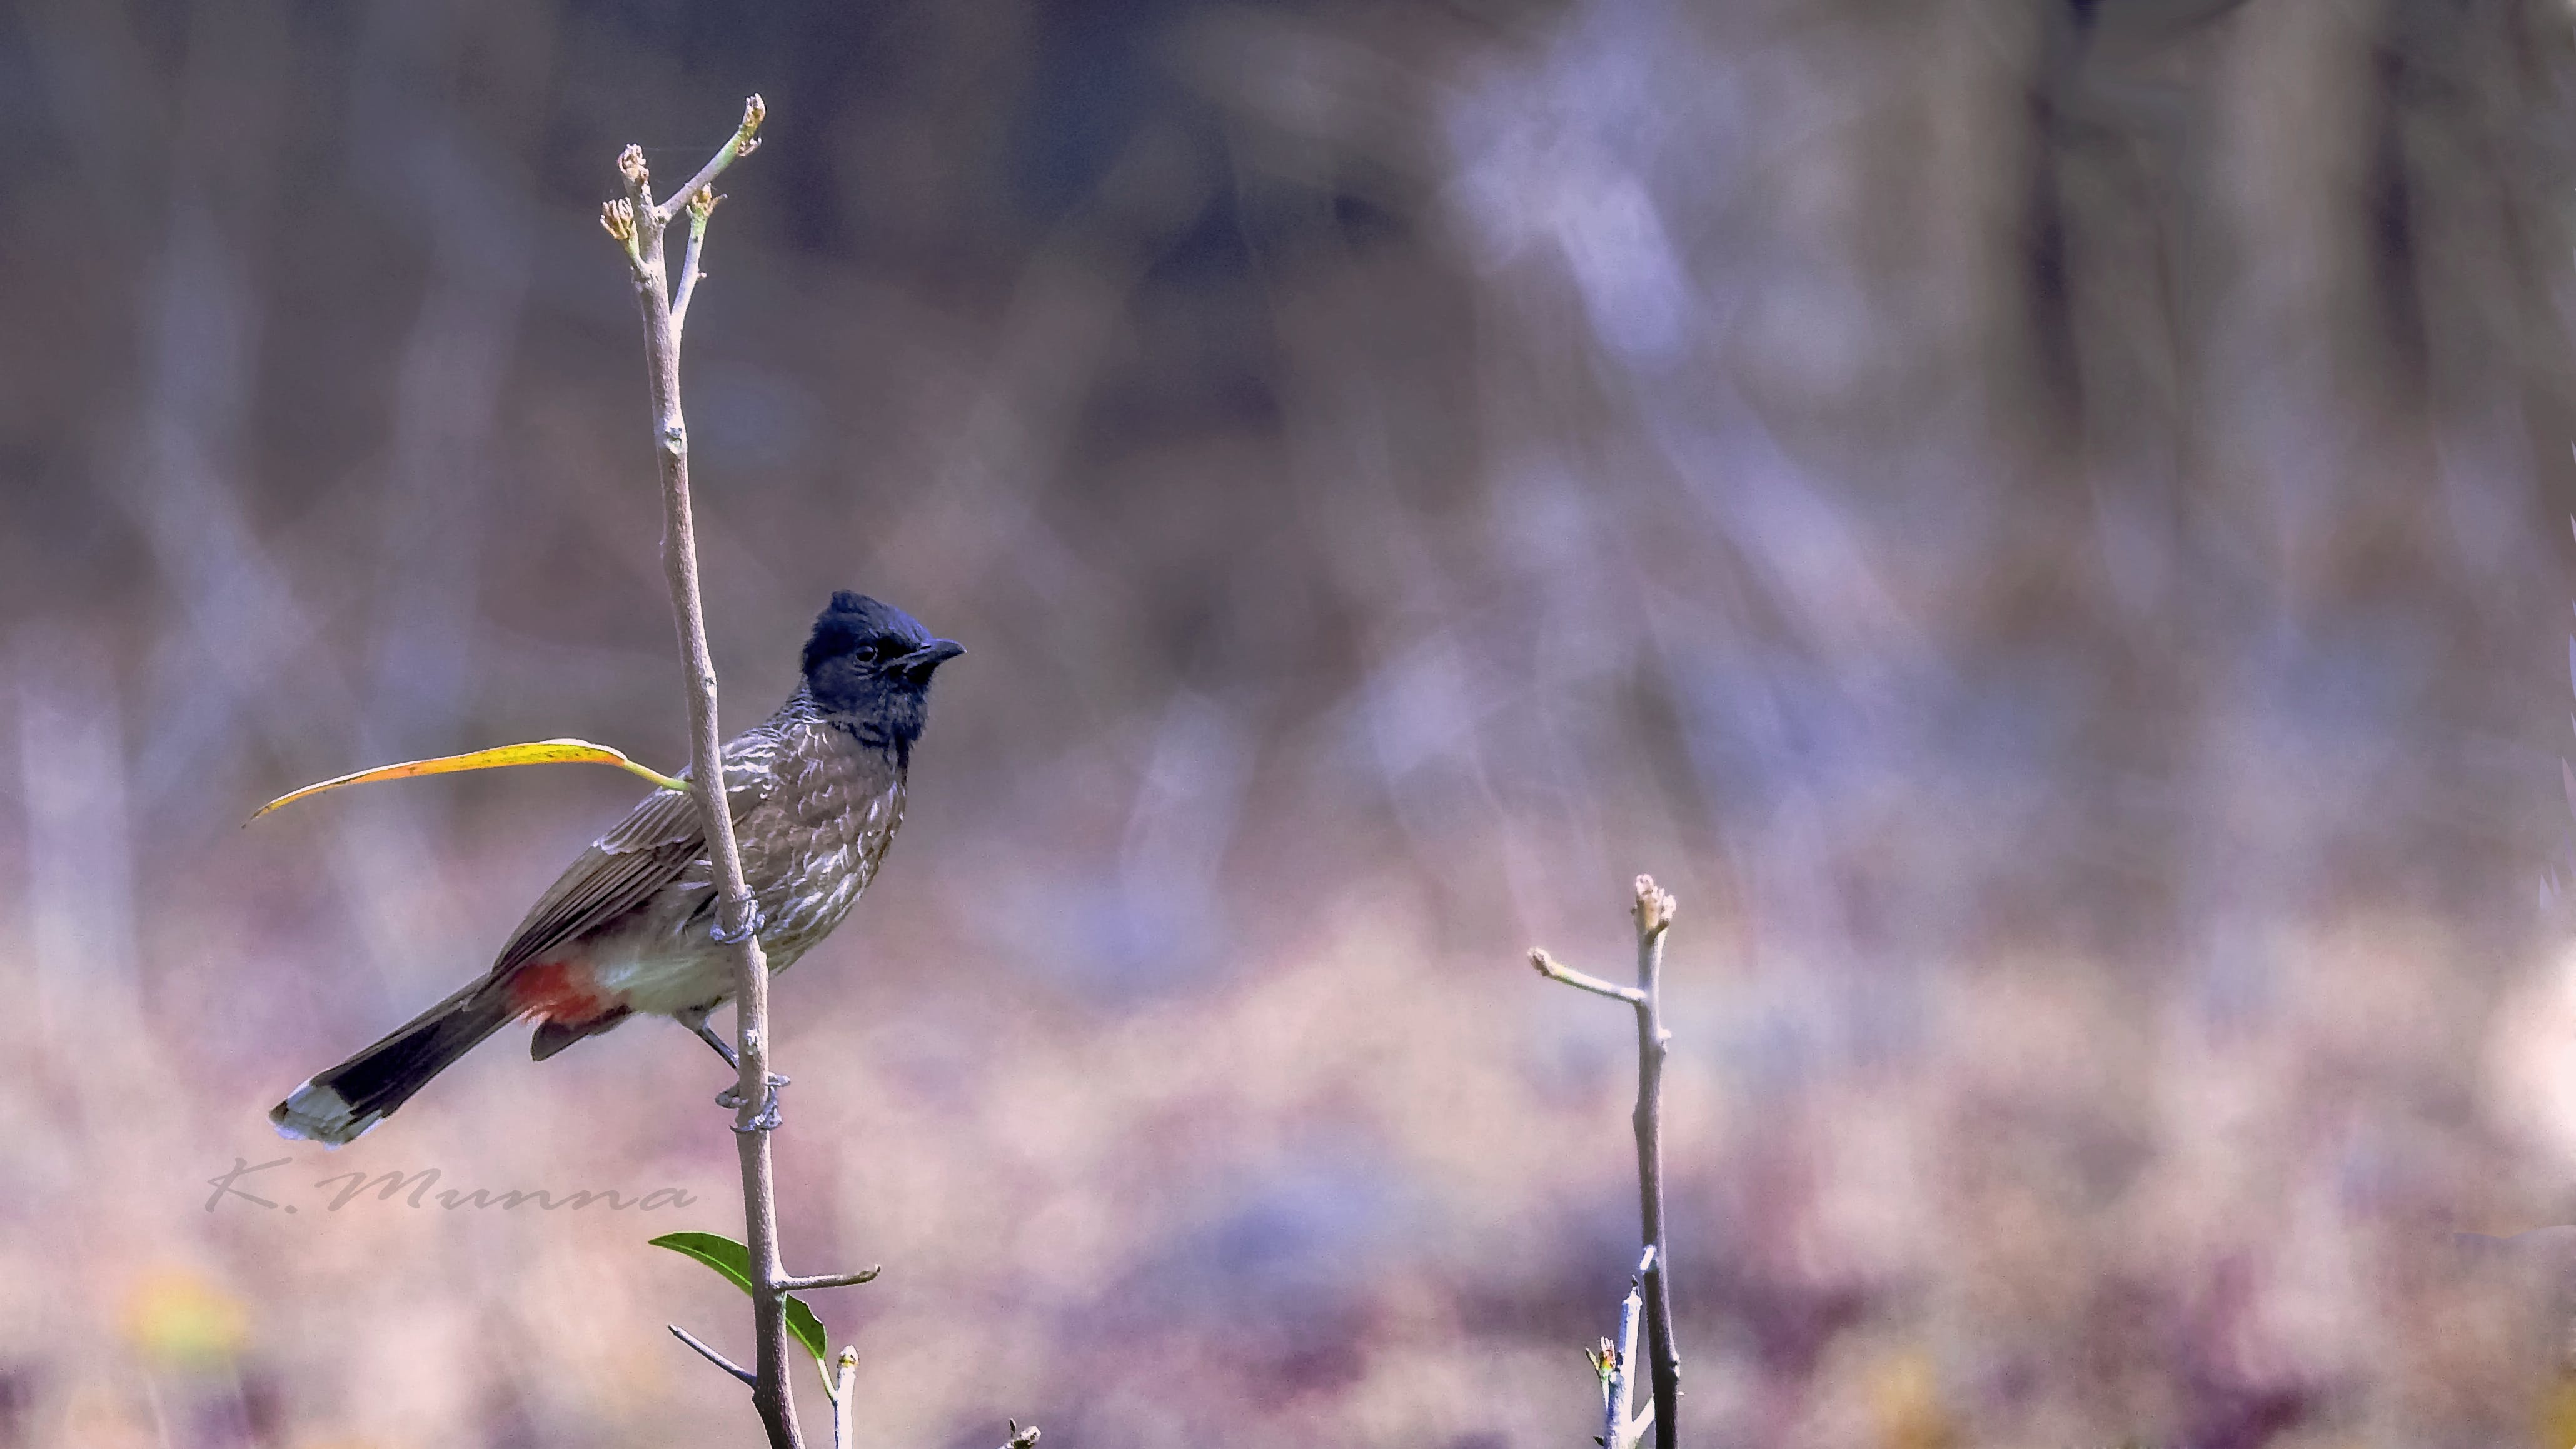 Free stock photo of Bulbul